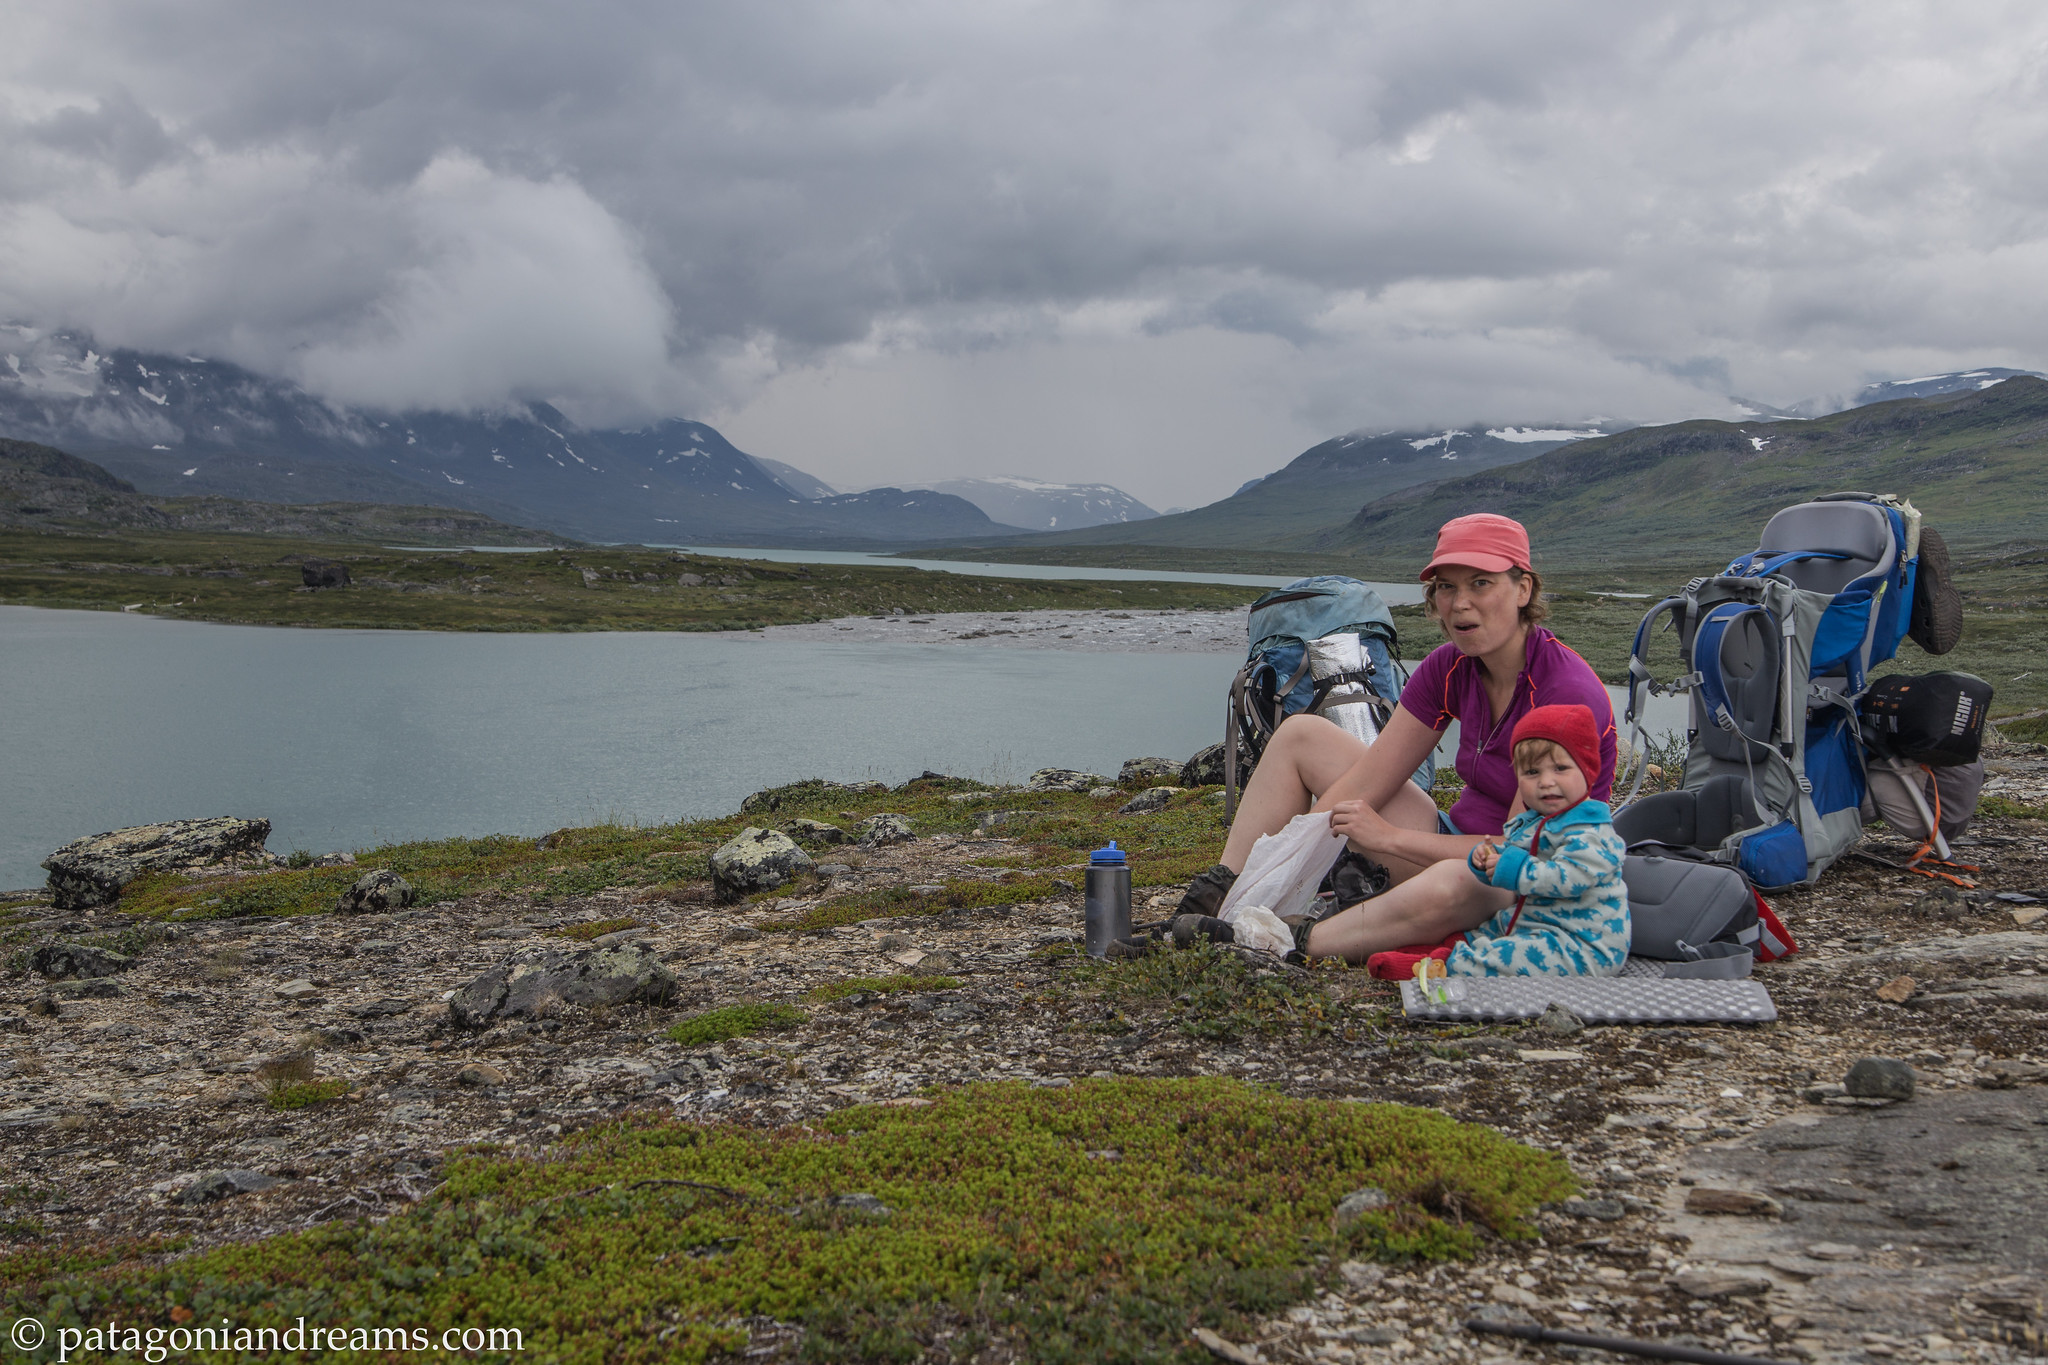 Minutes before the thunder storm came in. Kungsleden. Alesjaure. Swedish Lapland.